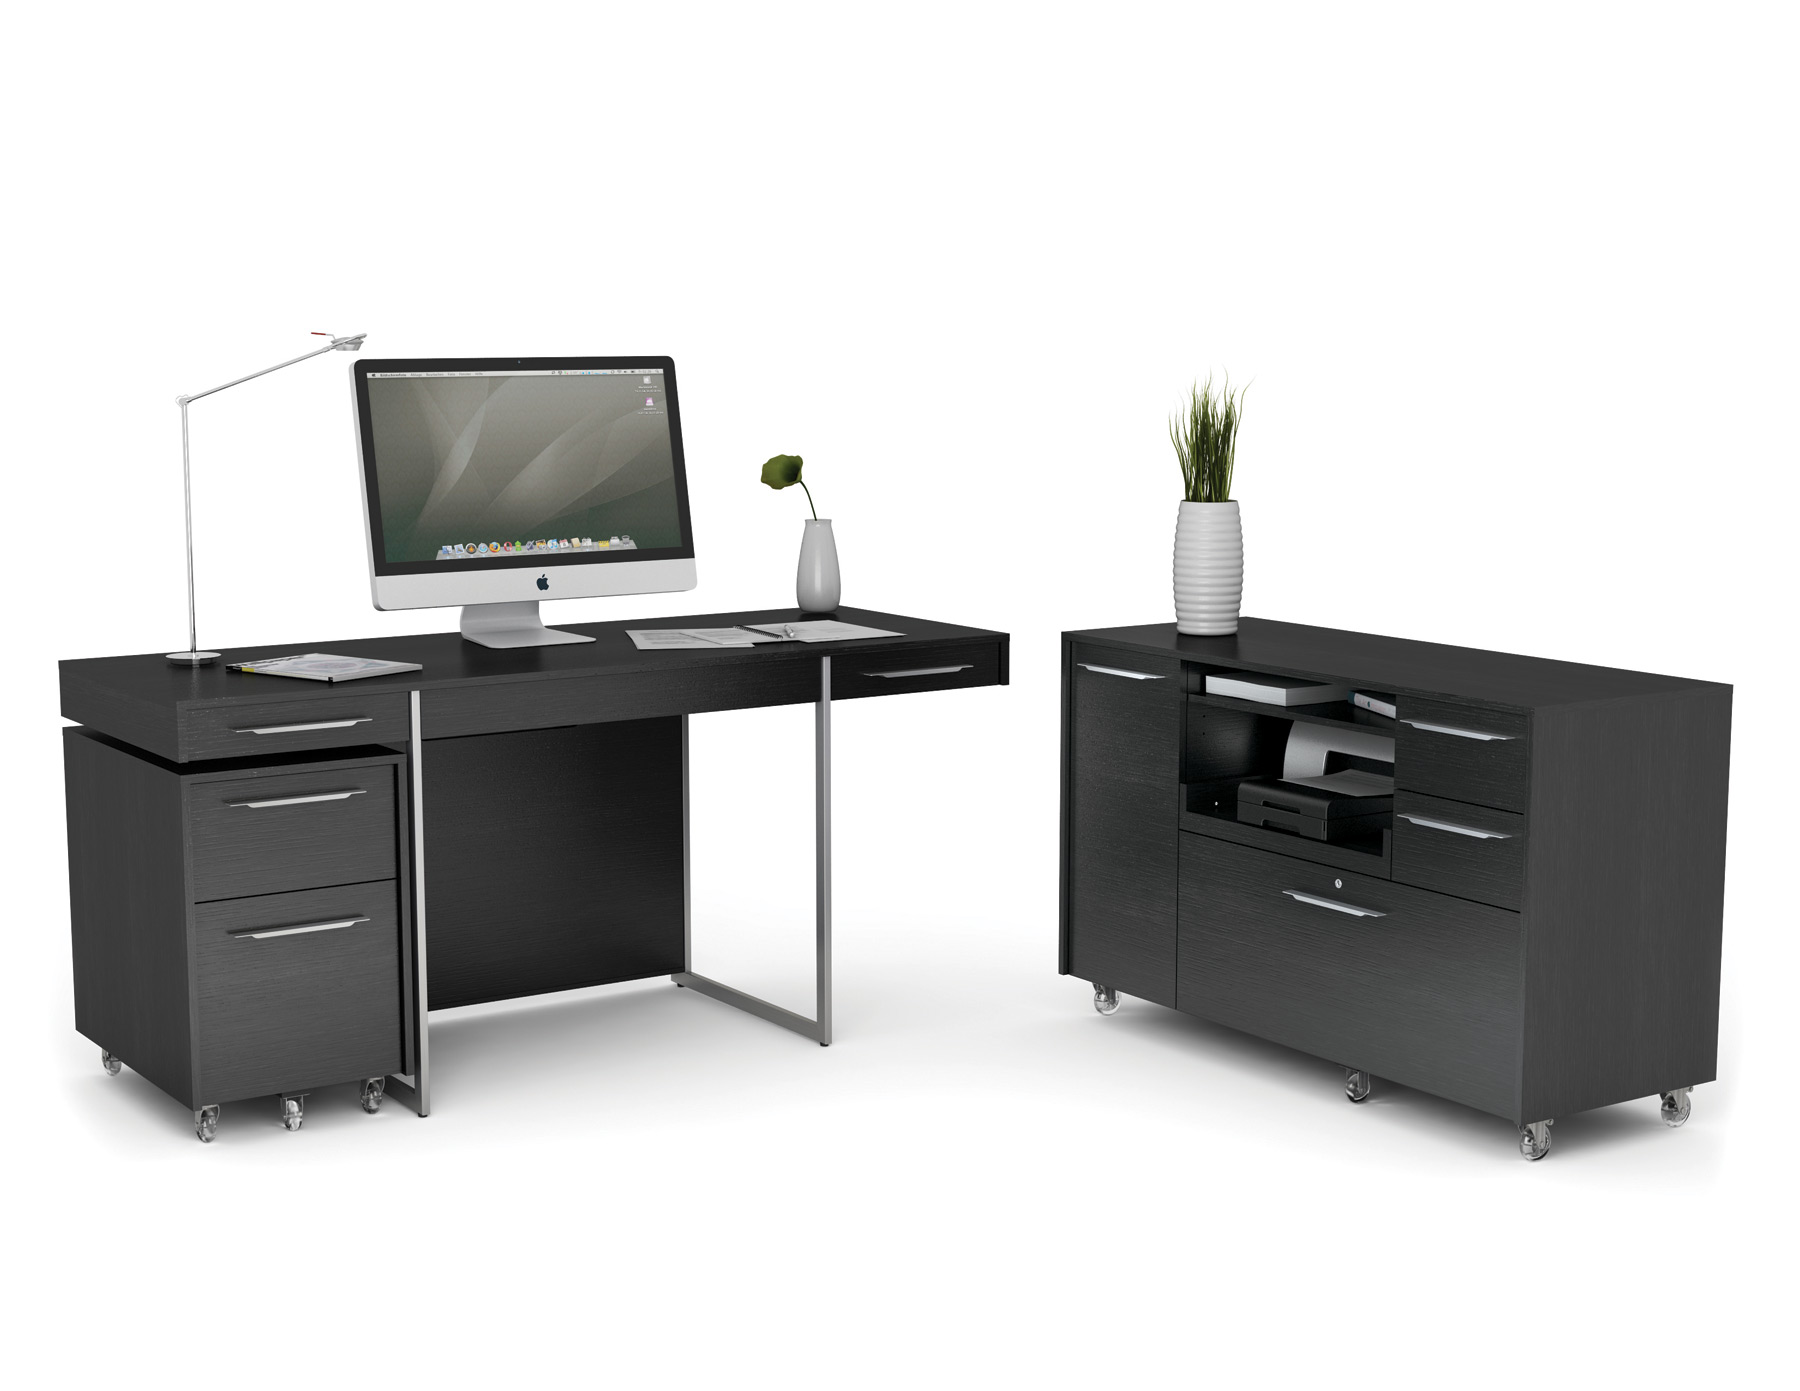 Delightful Elegant Design Of The Black Desk With Drawers With Silver Legs Added With  Black Wooden Drawers Home Design Ideas